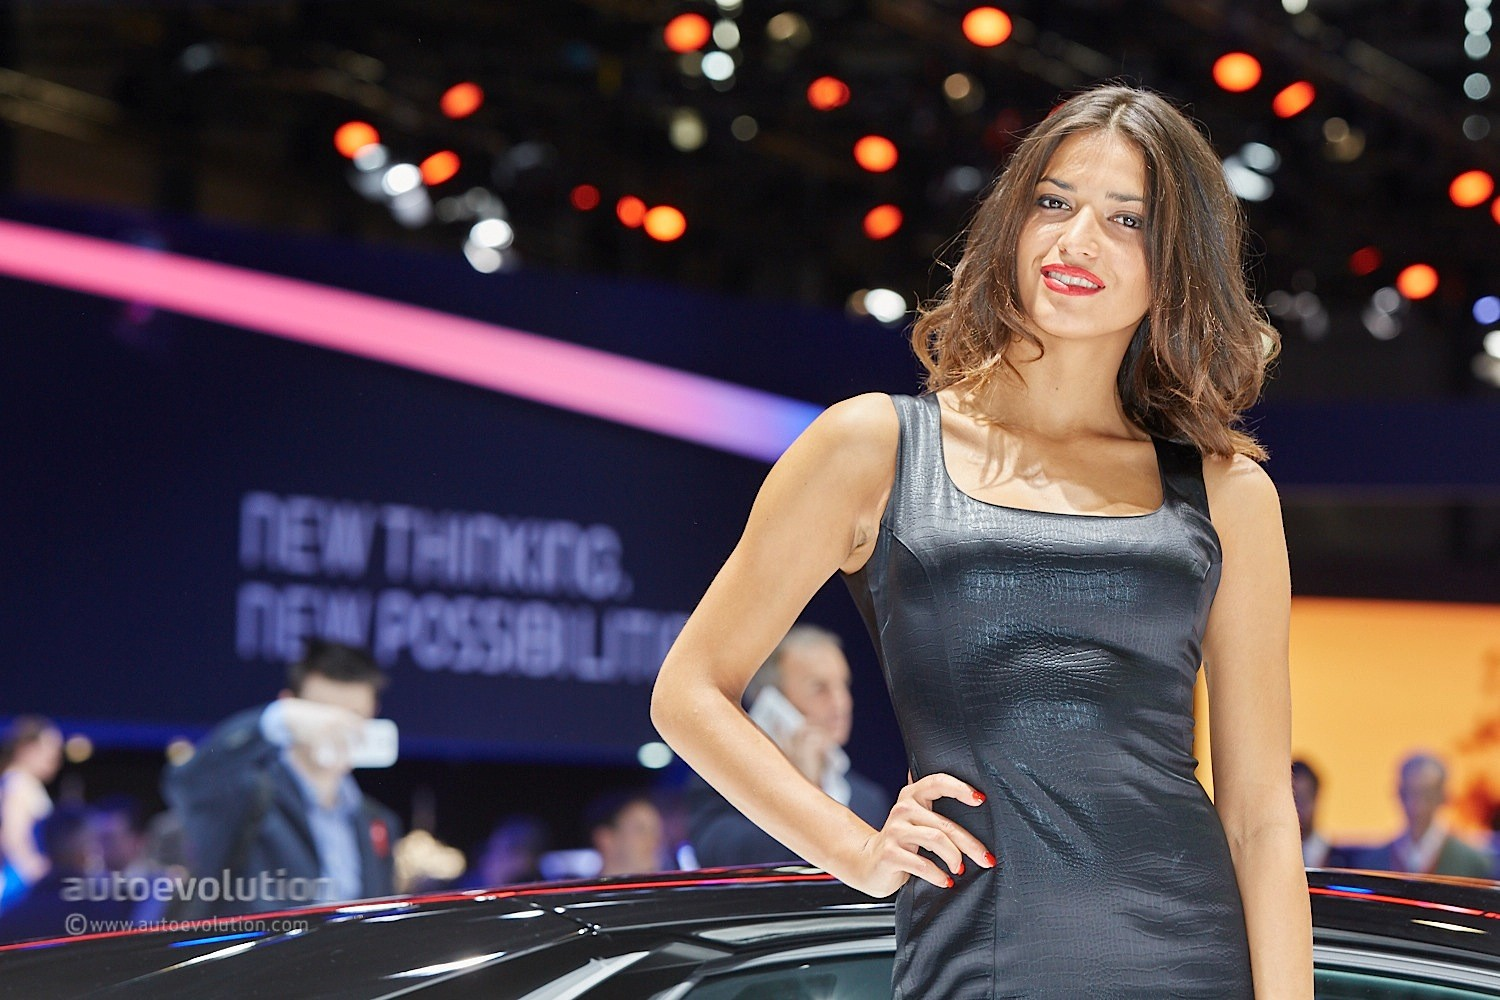 Hot Girls At The Geneva Motor Show 2015 - Autoevolution-1849